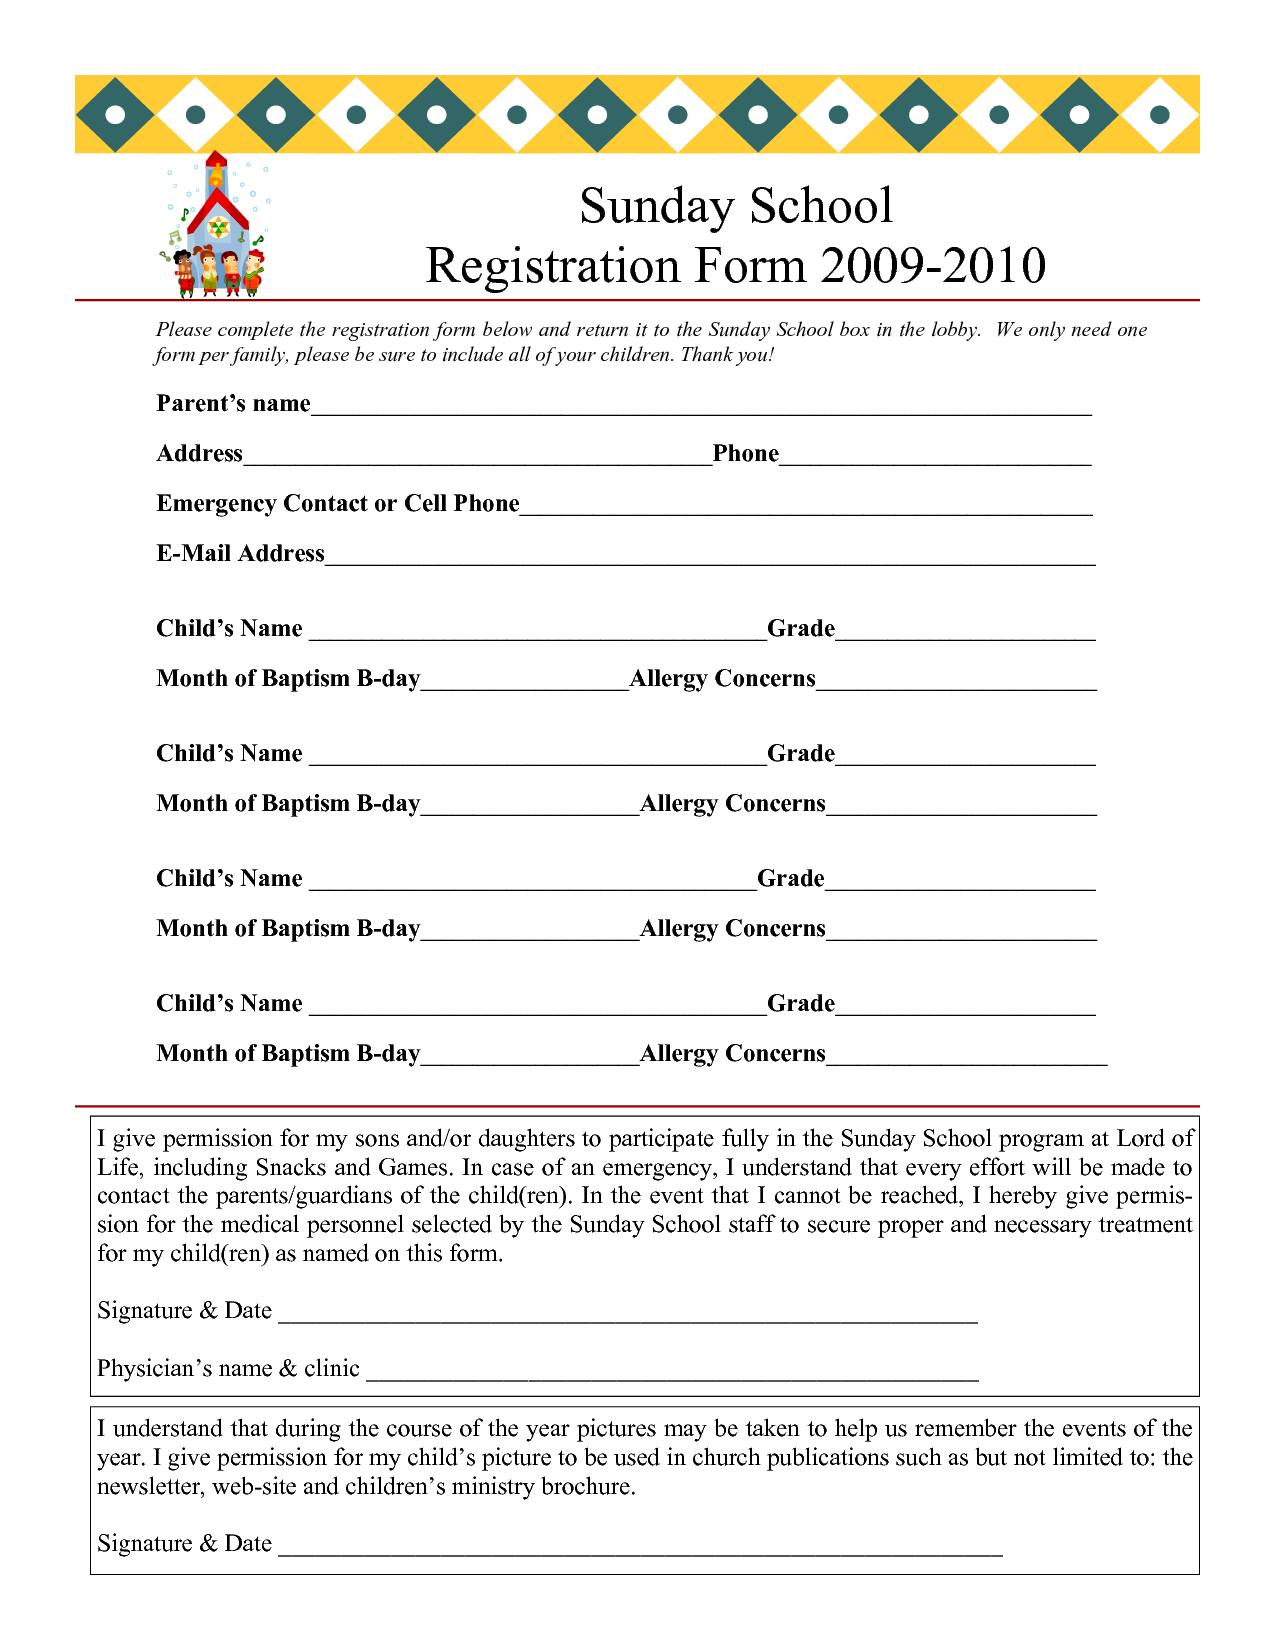 Sunday School Registration Form 2009 2010  Enrollment Form Format